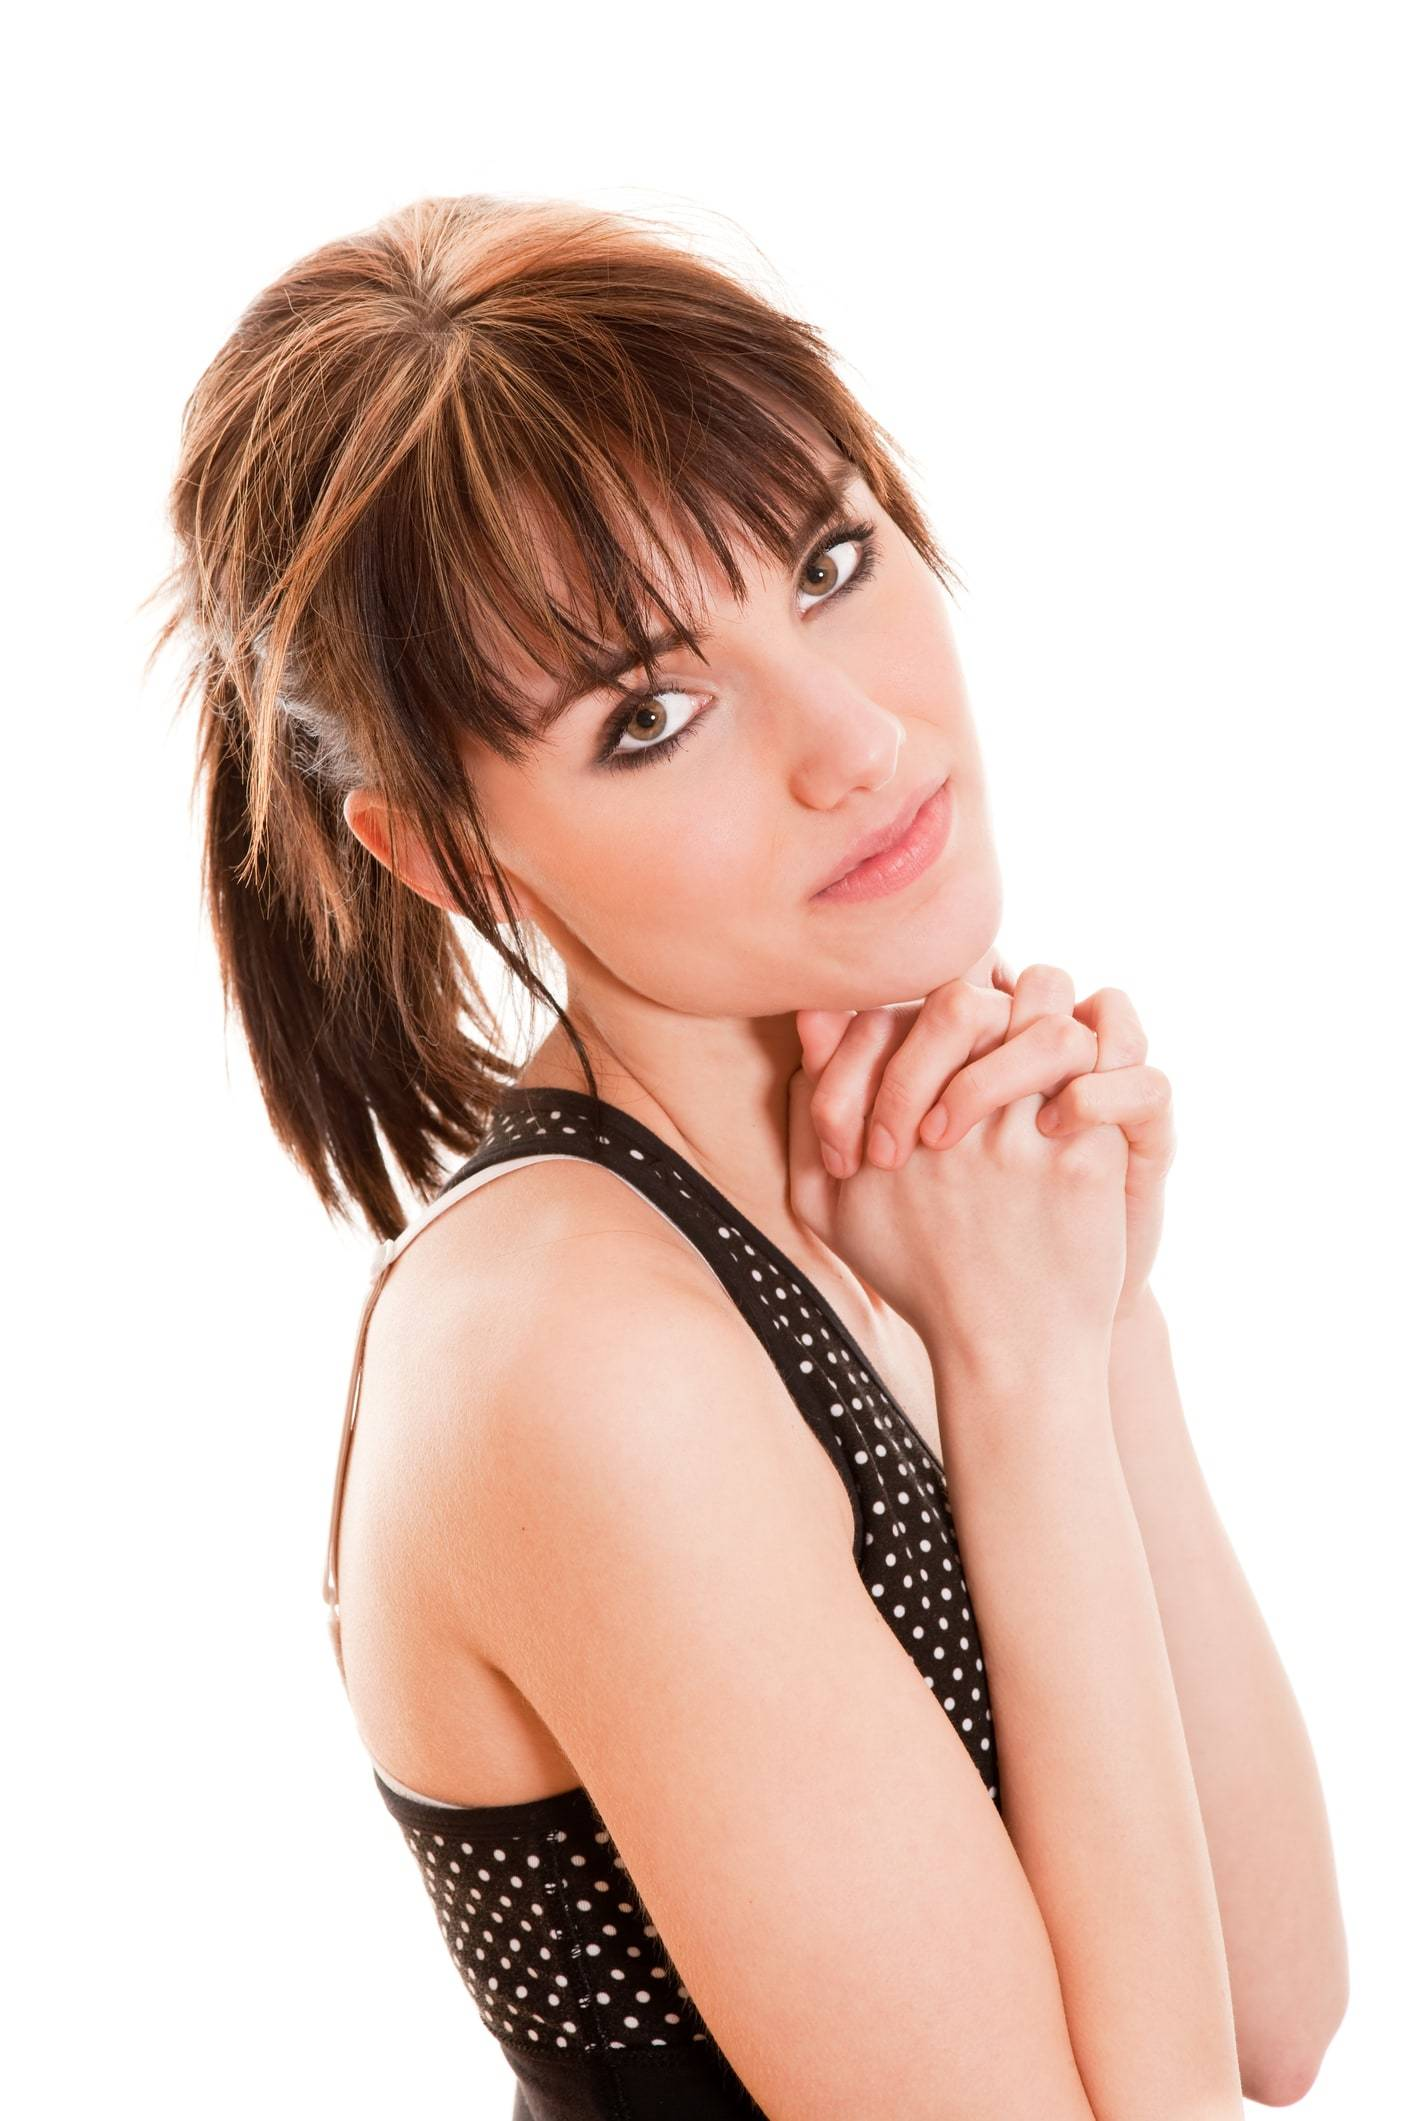 ponytail with bangs of a cute woman on a white background